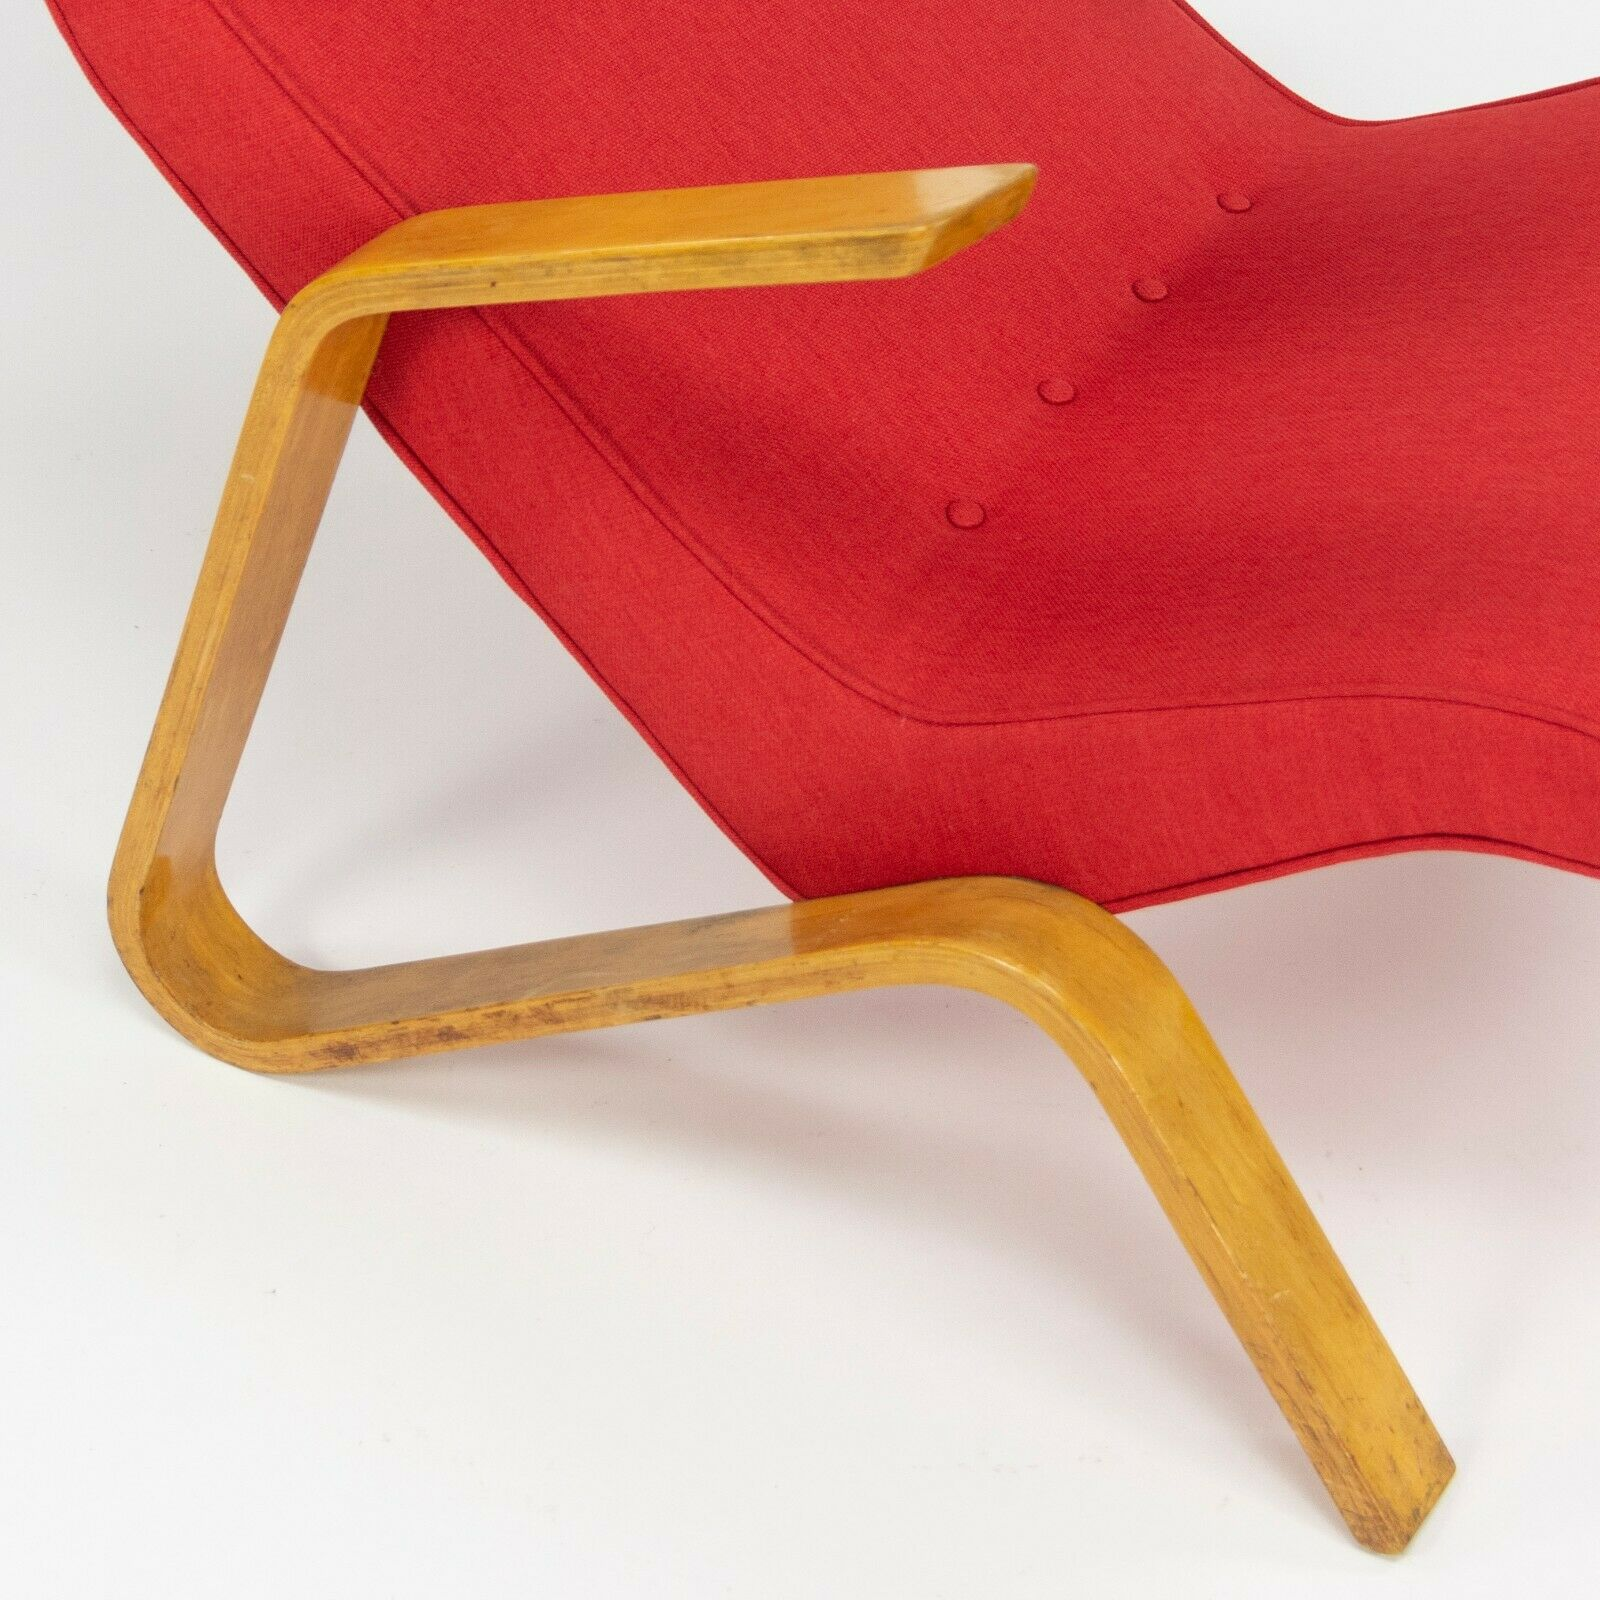 1950s Eero Saarinen Knoll Grasshopper Lounge Chair w/ New Red Knoll Upholstery